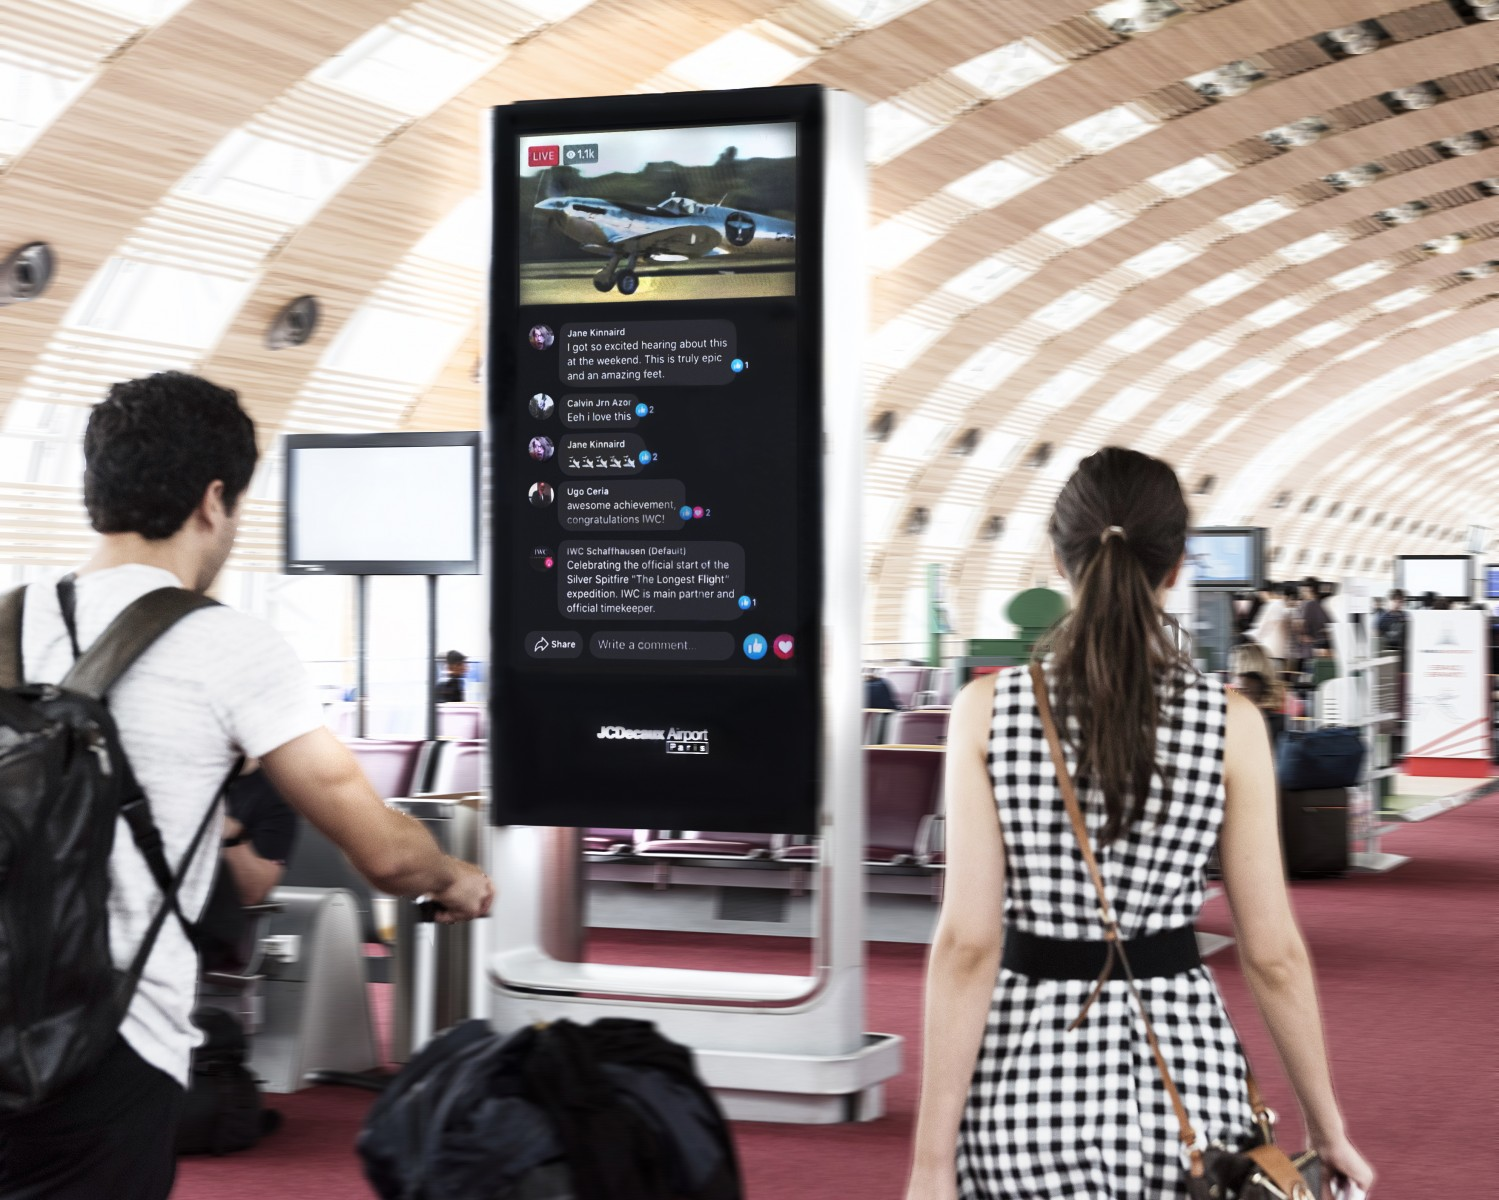 IWC SCHAFFHAUSEN, FACEBOOK AND JCDECAUX AIRPORT PARIS BREAK